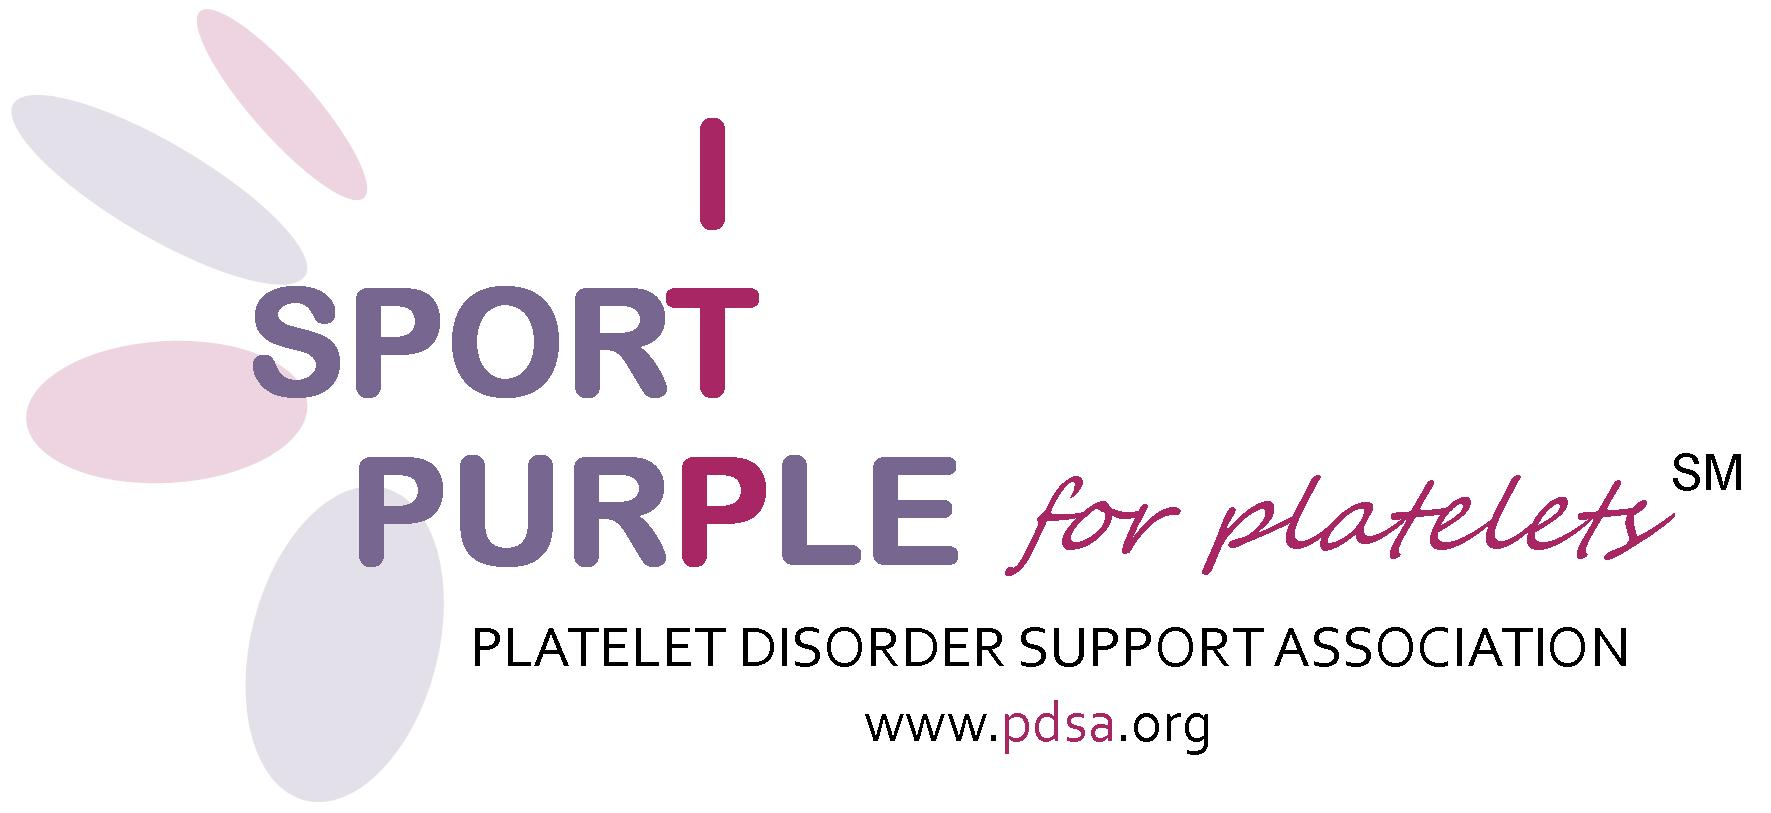 Sport Purple for Platelets logo